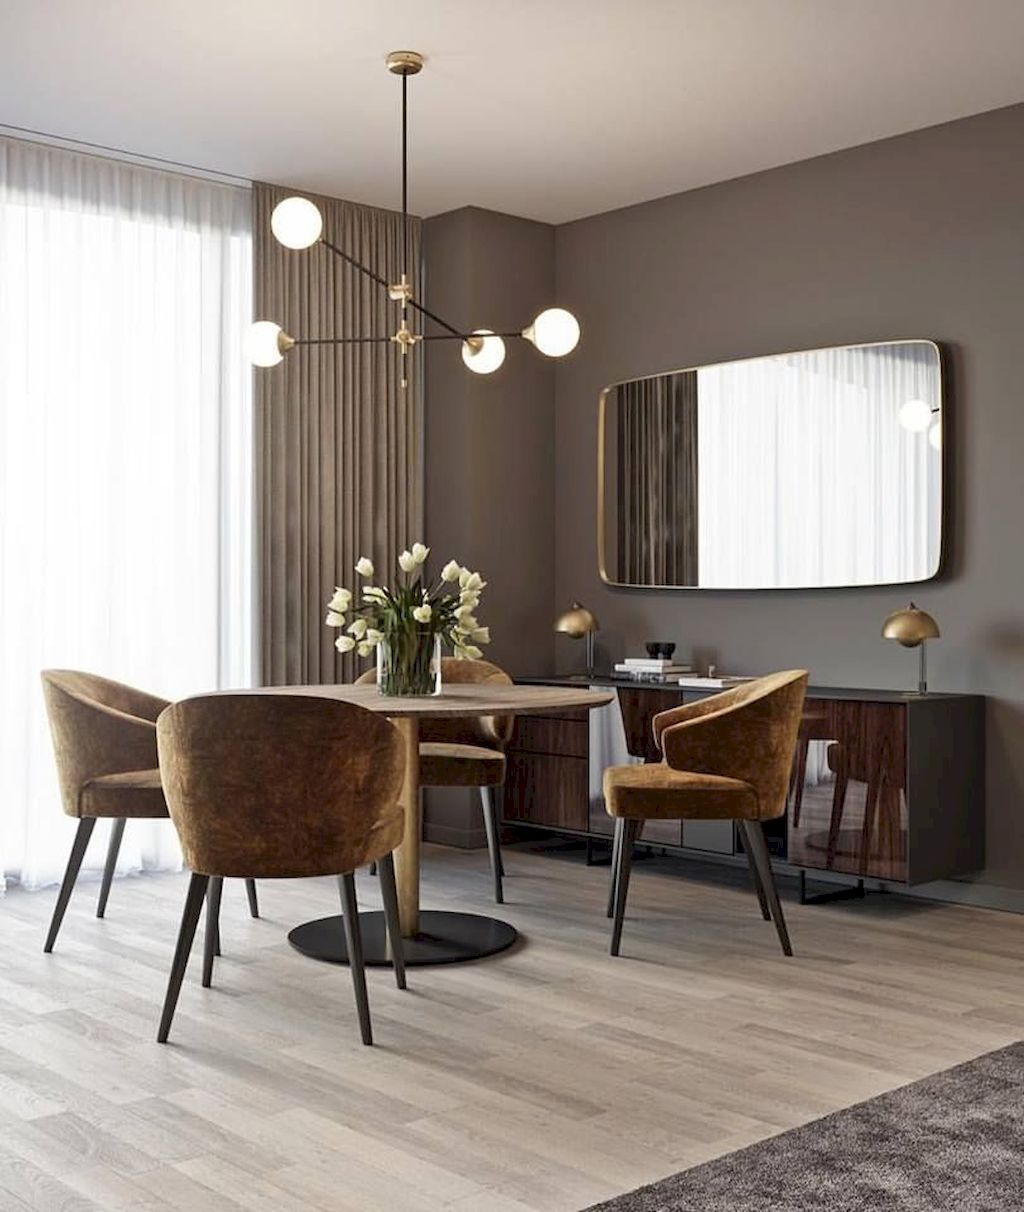 35 Luxury Dining Room Design Ideas: 75 Modern Mid Century Dining Room Table Ideas (With Images